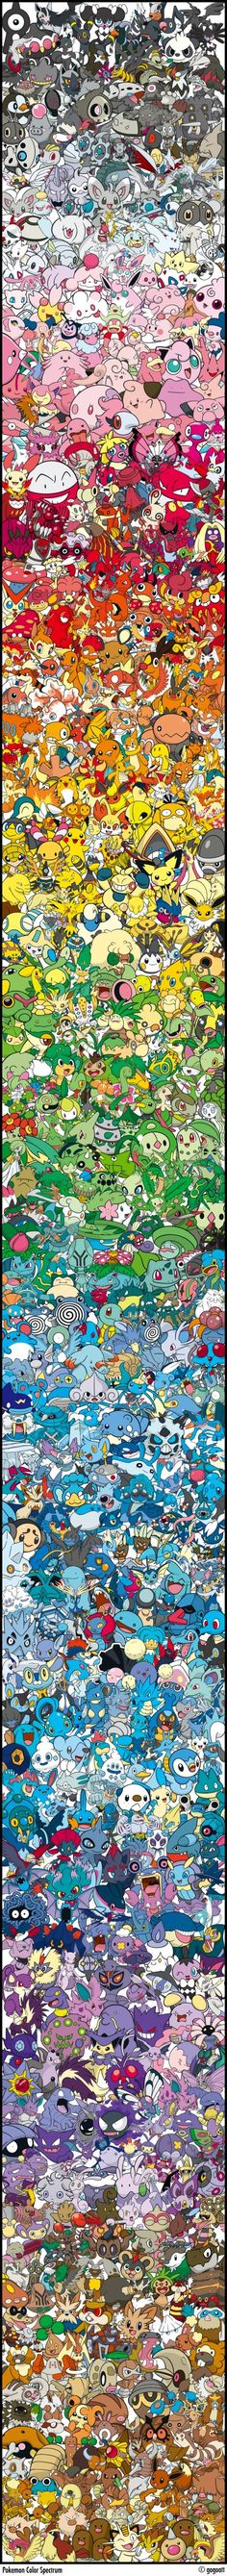 Every Single Pokémon Arranged by Color I see a new version of the Epic Pokemon Pattern in the making here.